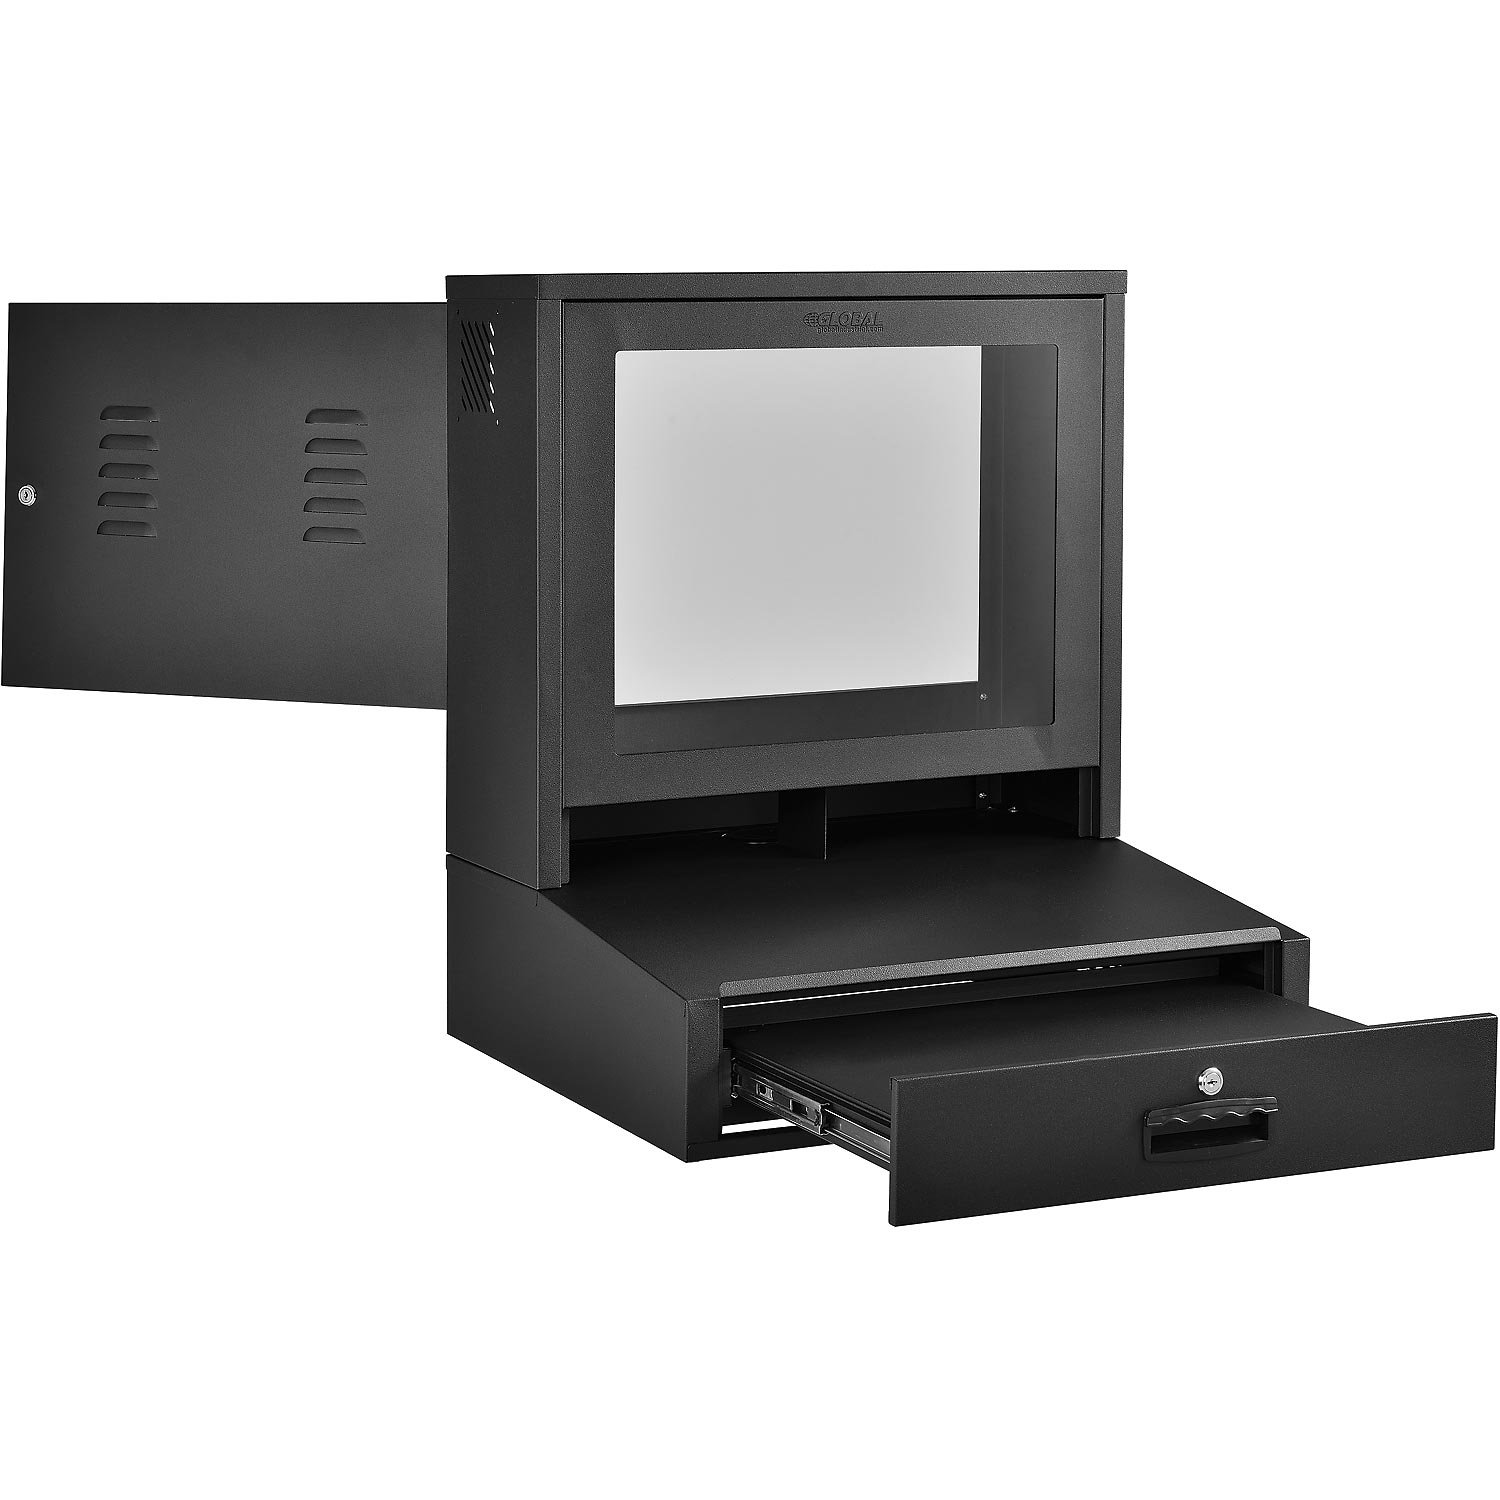 LCD Counter Top Security Computer Cabinet, Black, 24-1/2''W x 22-1/2''D x 29-1/2''H by Global Industrial (Image #1)